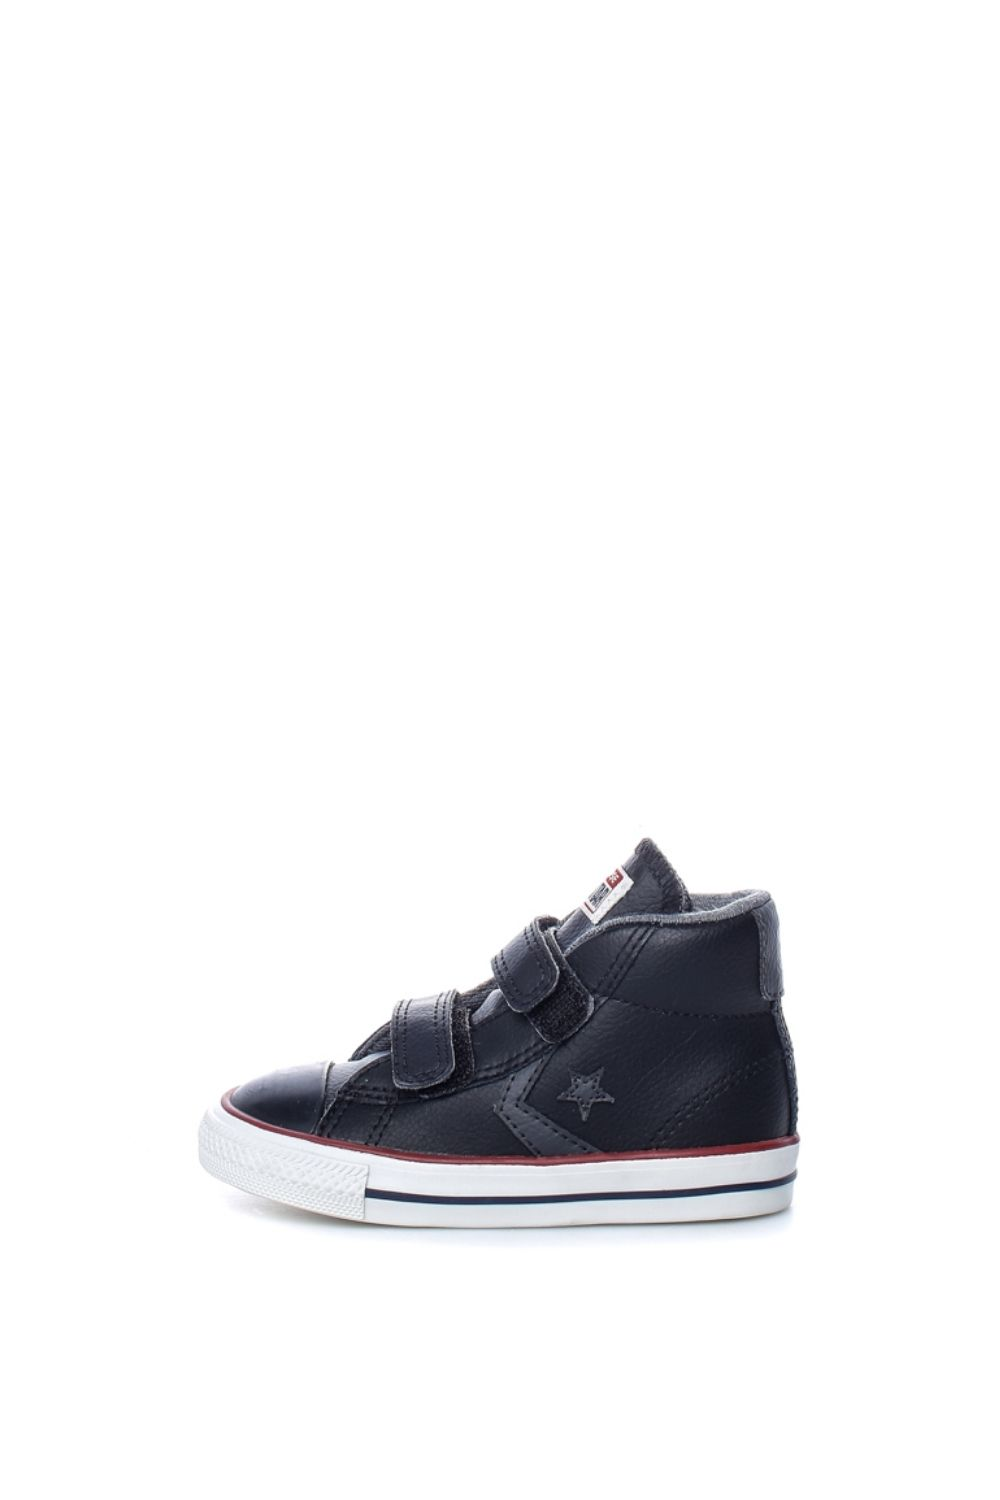 CONVERSE – Βρεφικά ψηλά sneakers CONVERSE Star Player EV V Mid μαύρα